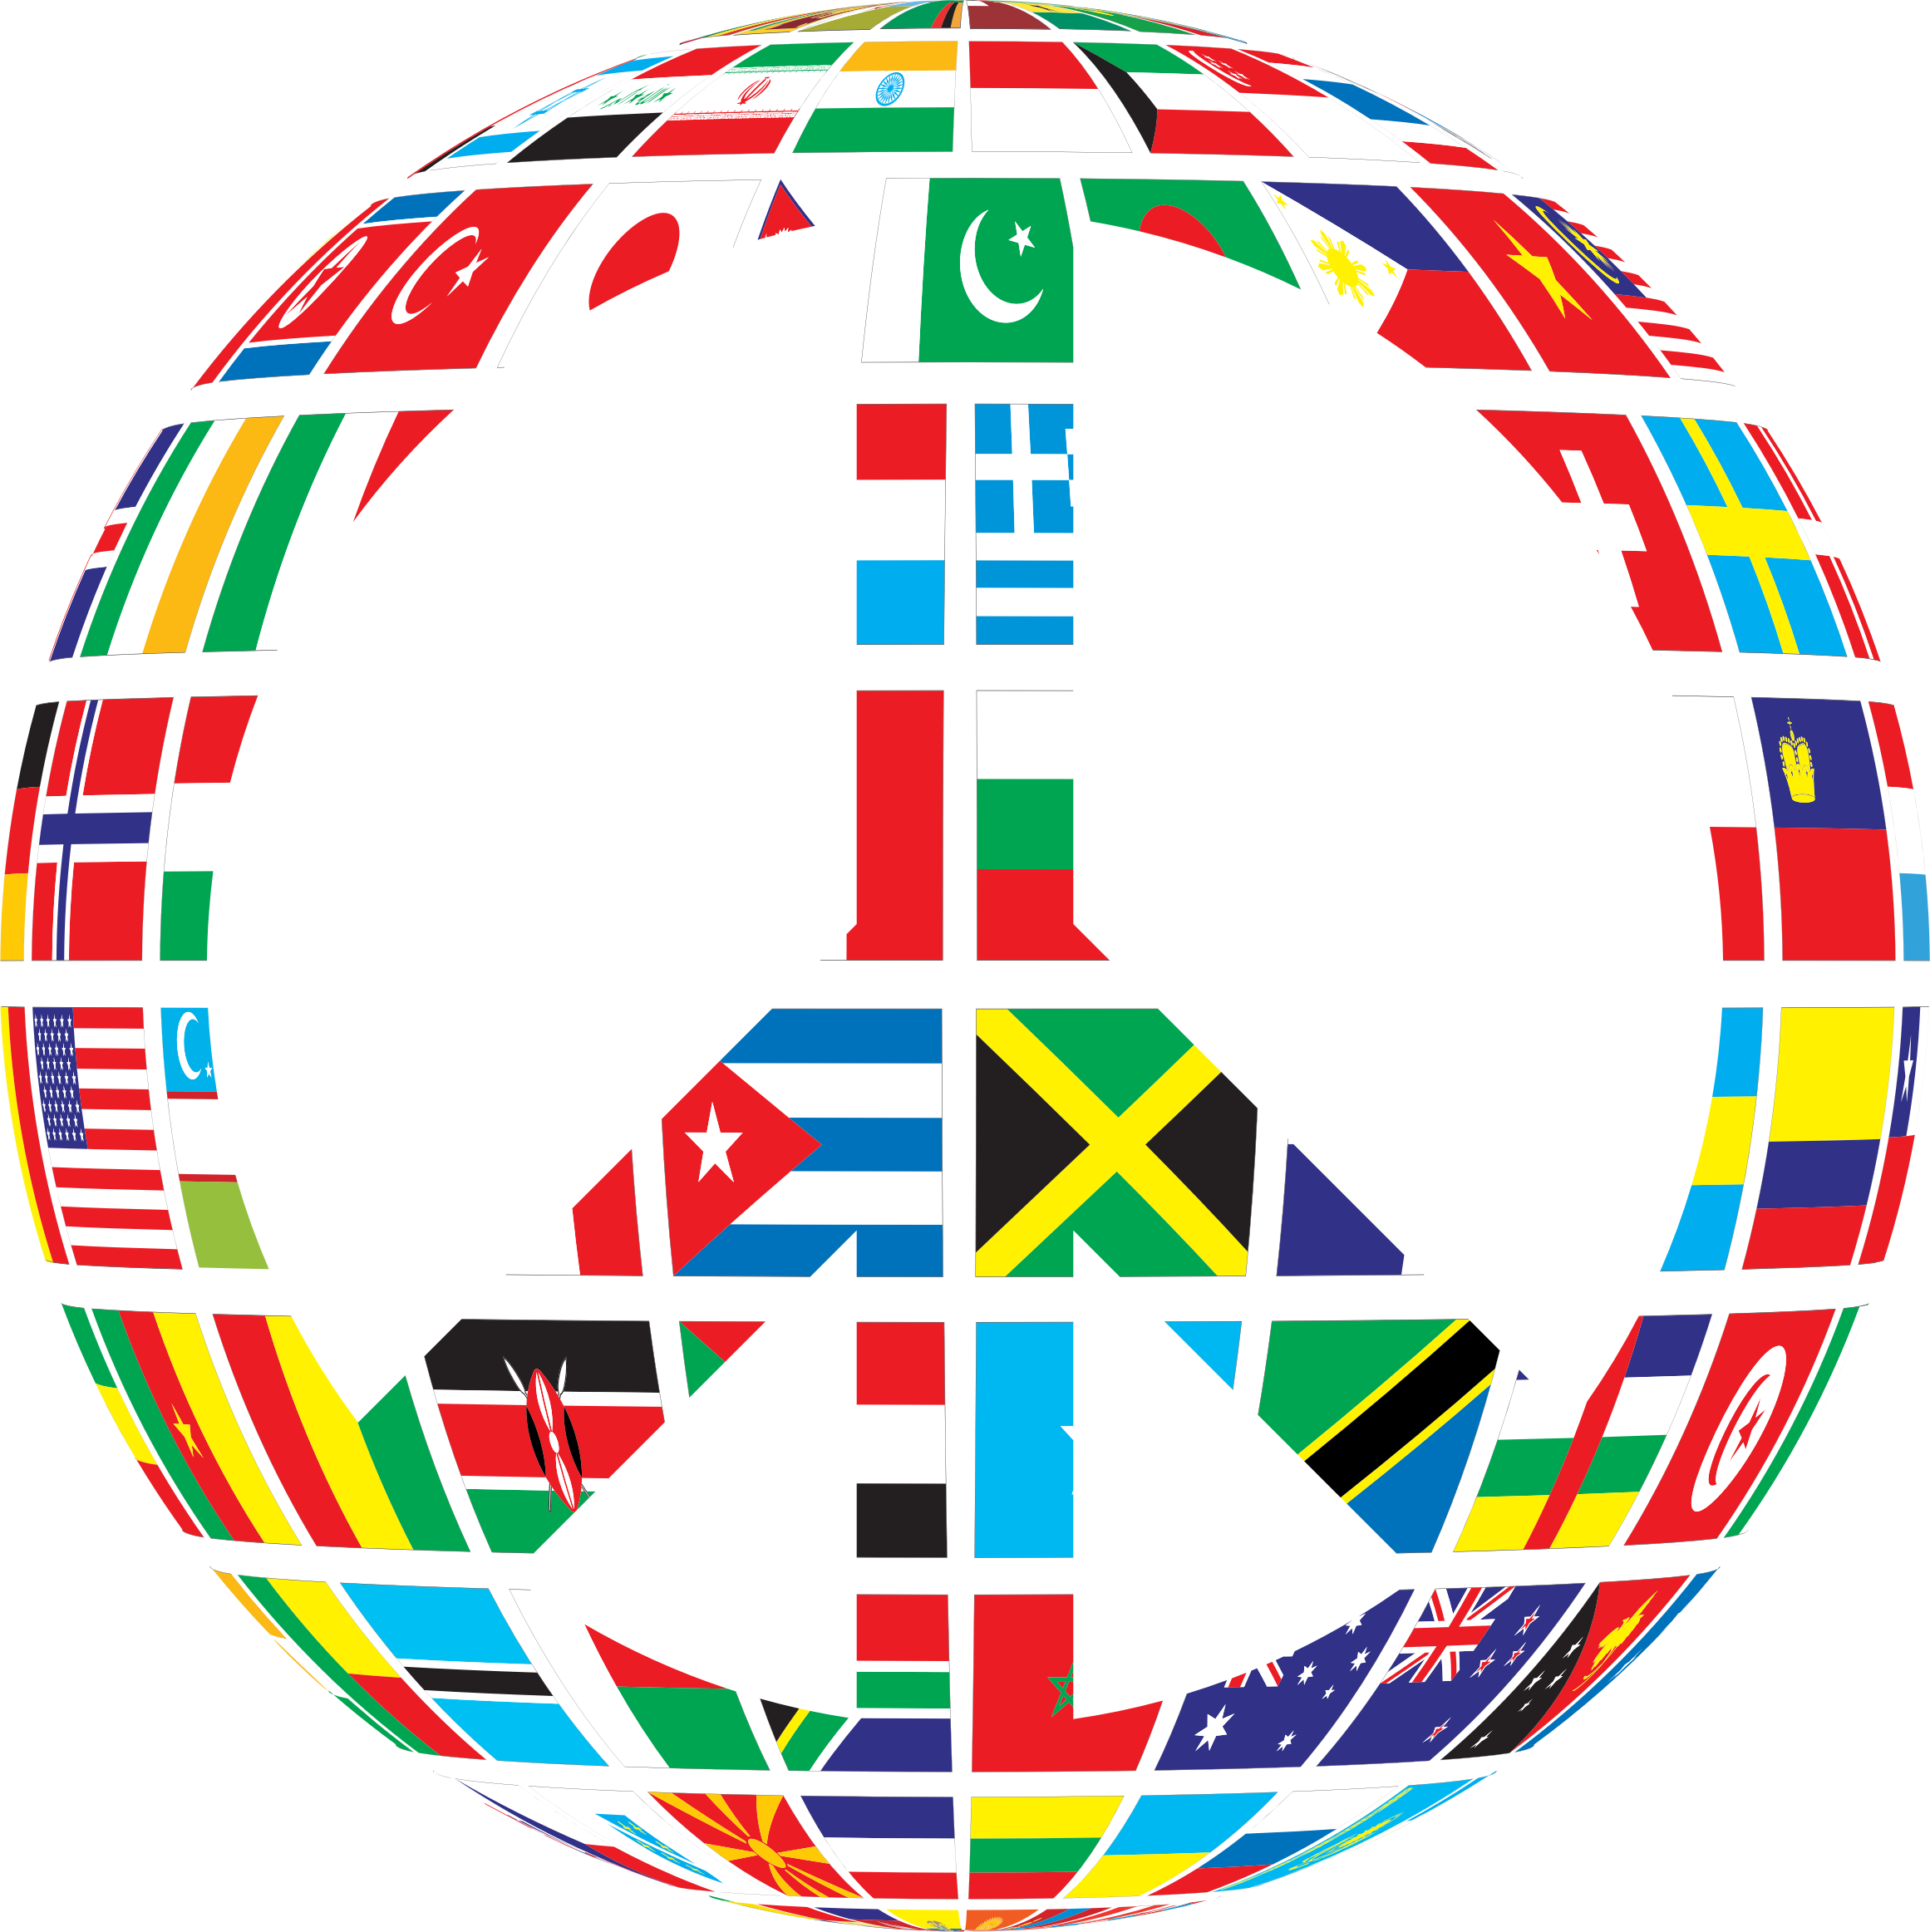 Peace clipart workd. Global big image png